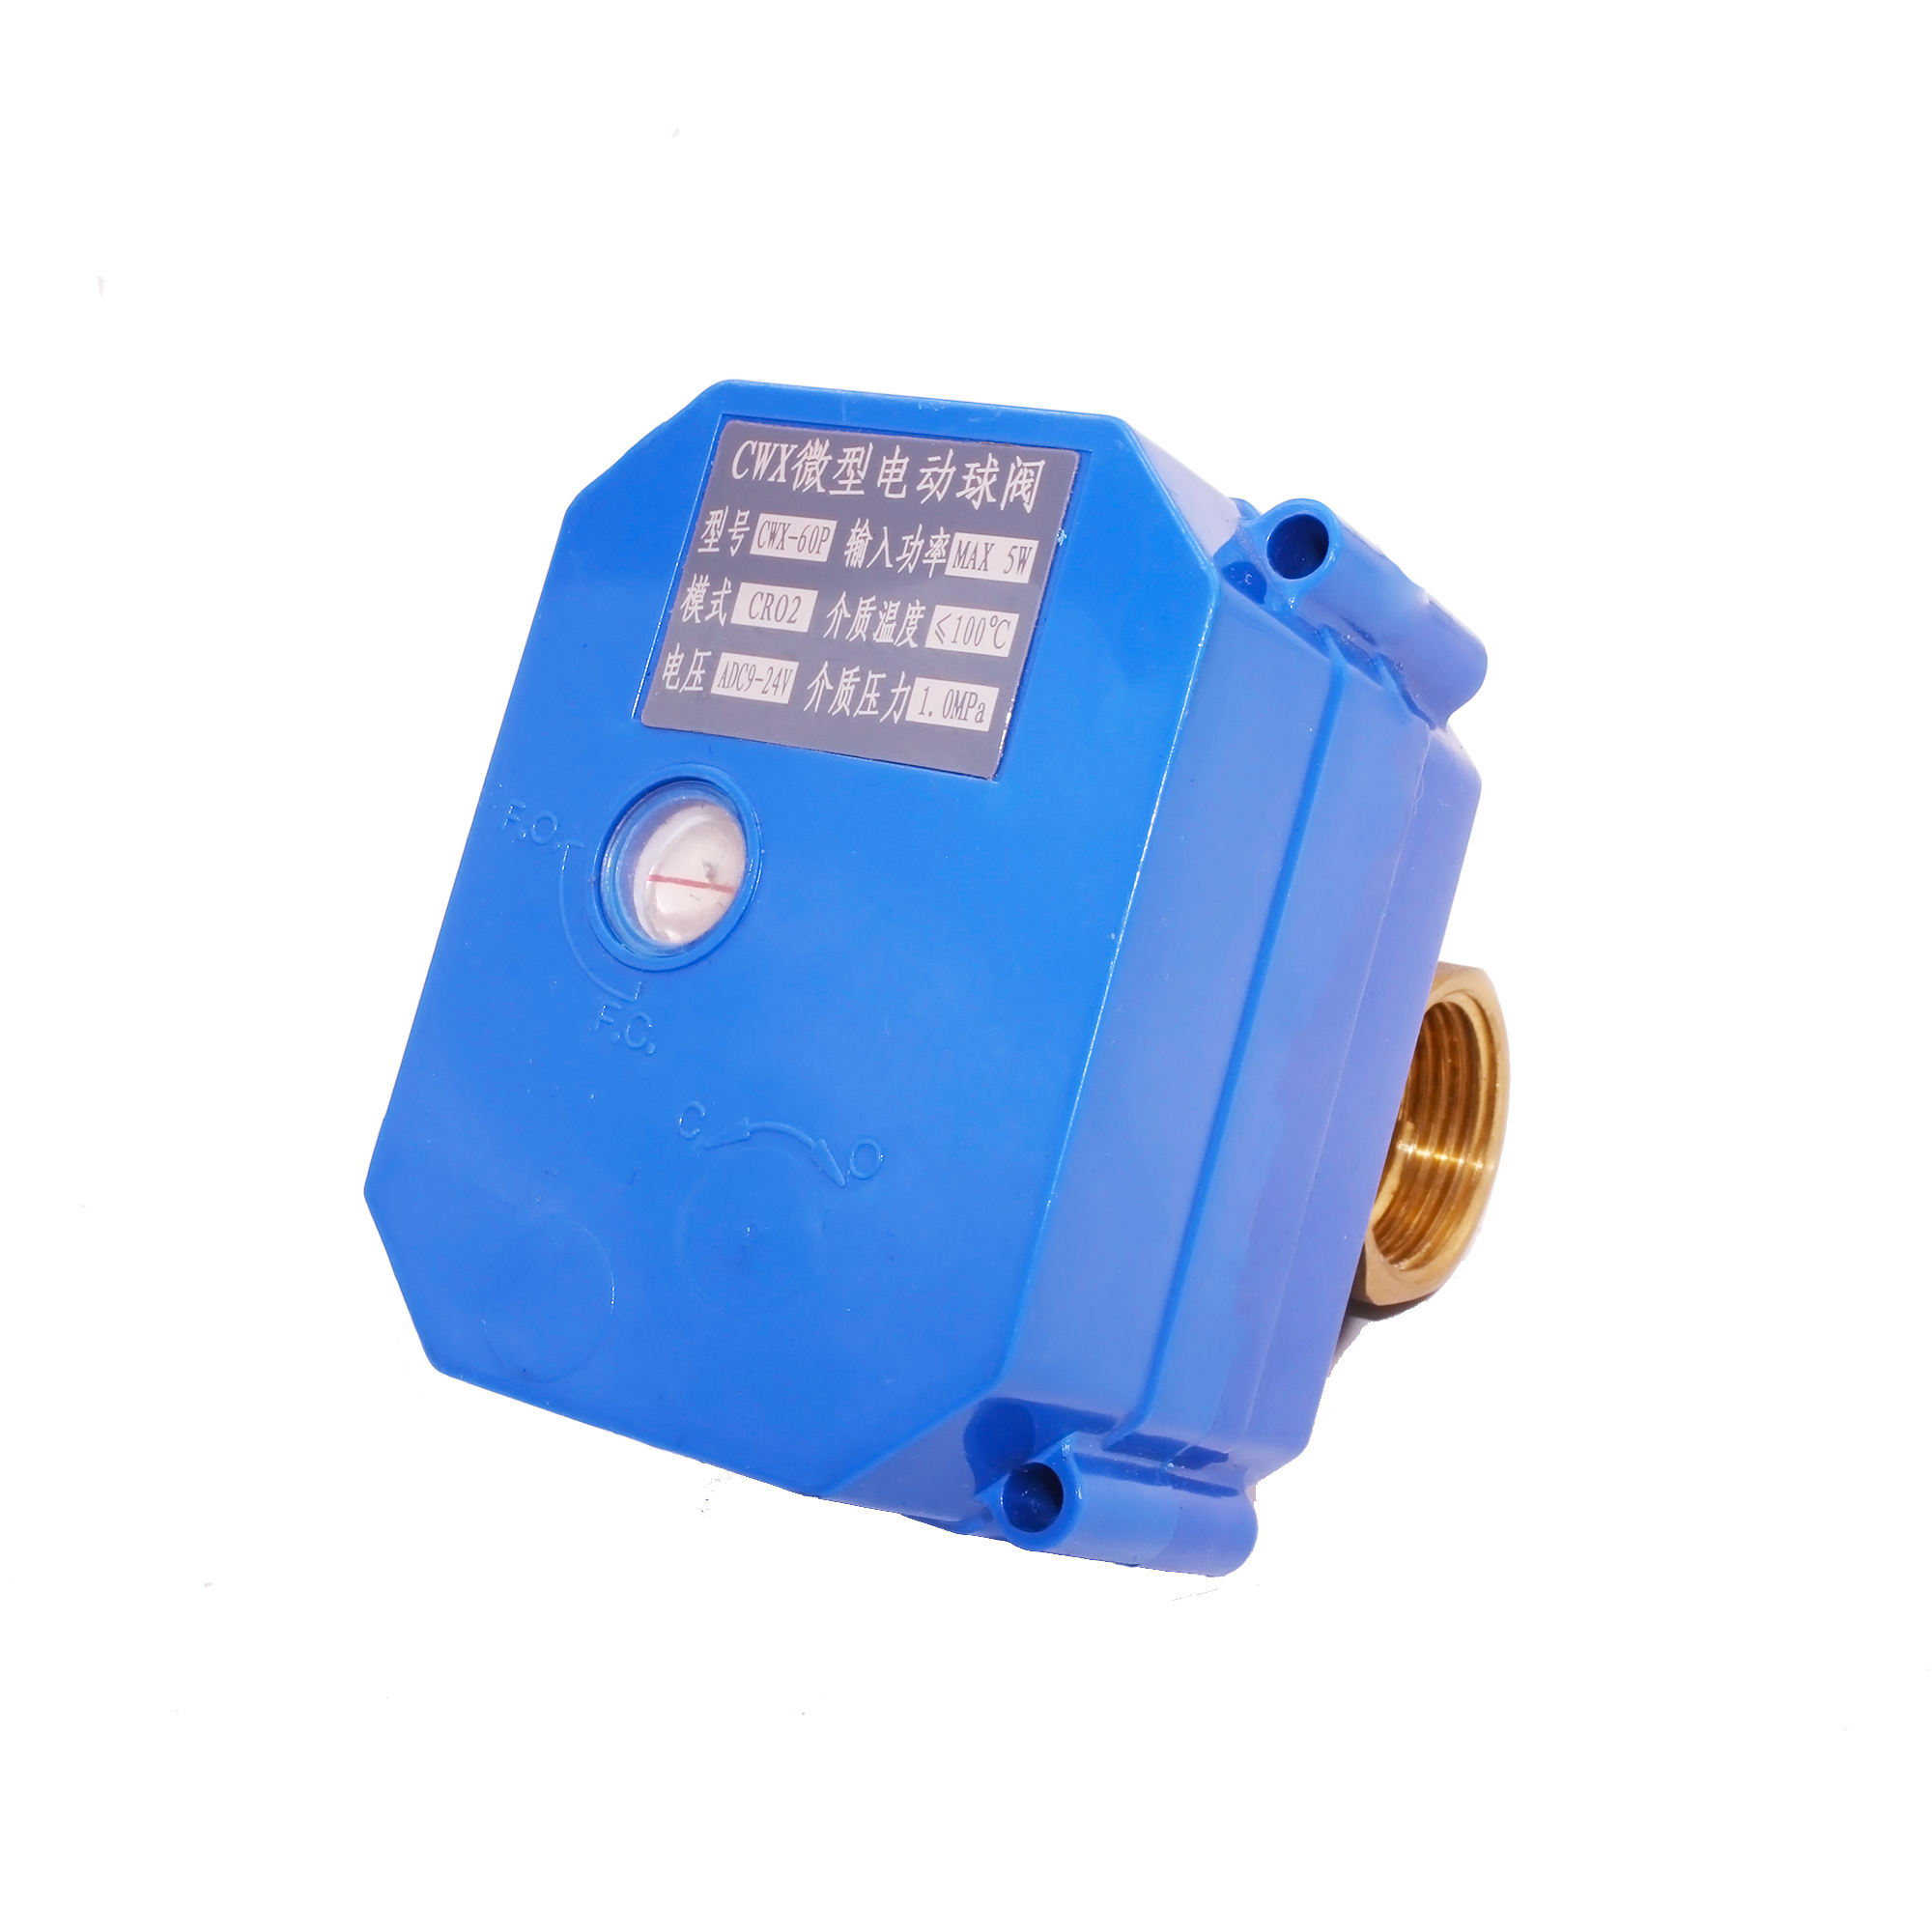 "CWX-60P CR01 to CR05 electric motor actuator valve for full port 1 1/4"",220v/AC water treatment project"